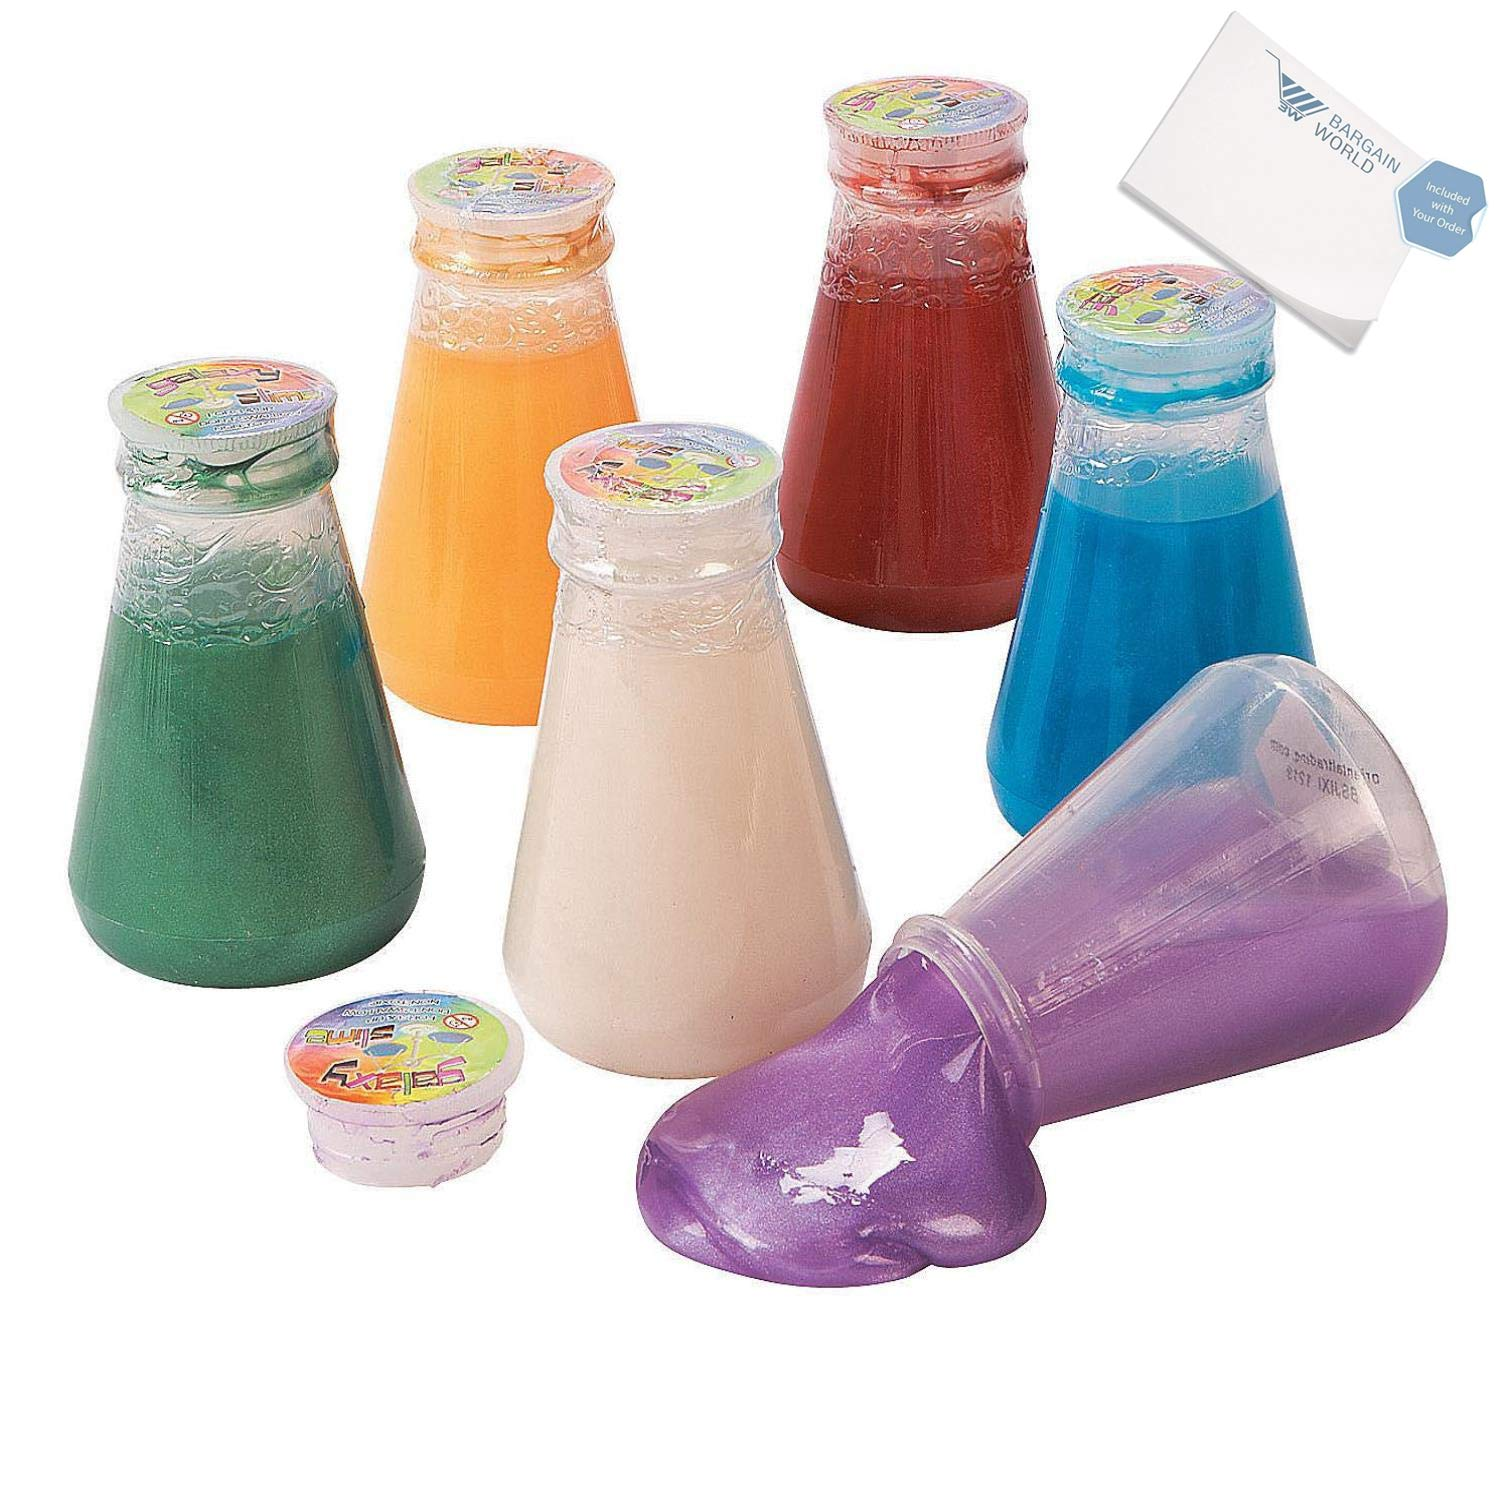 Bargain World Metallic Slime in Laboratory Flasks (With Sticky Notes) by Bargain World (Image #3)